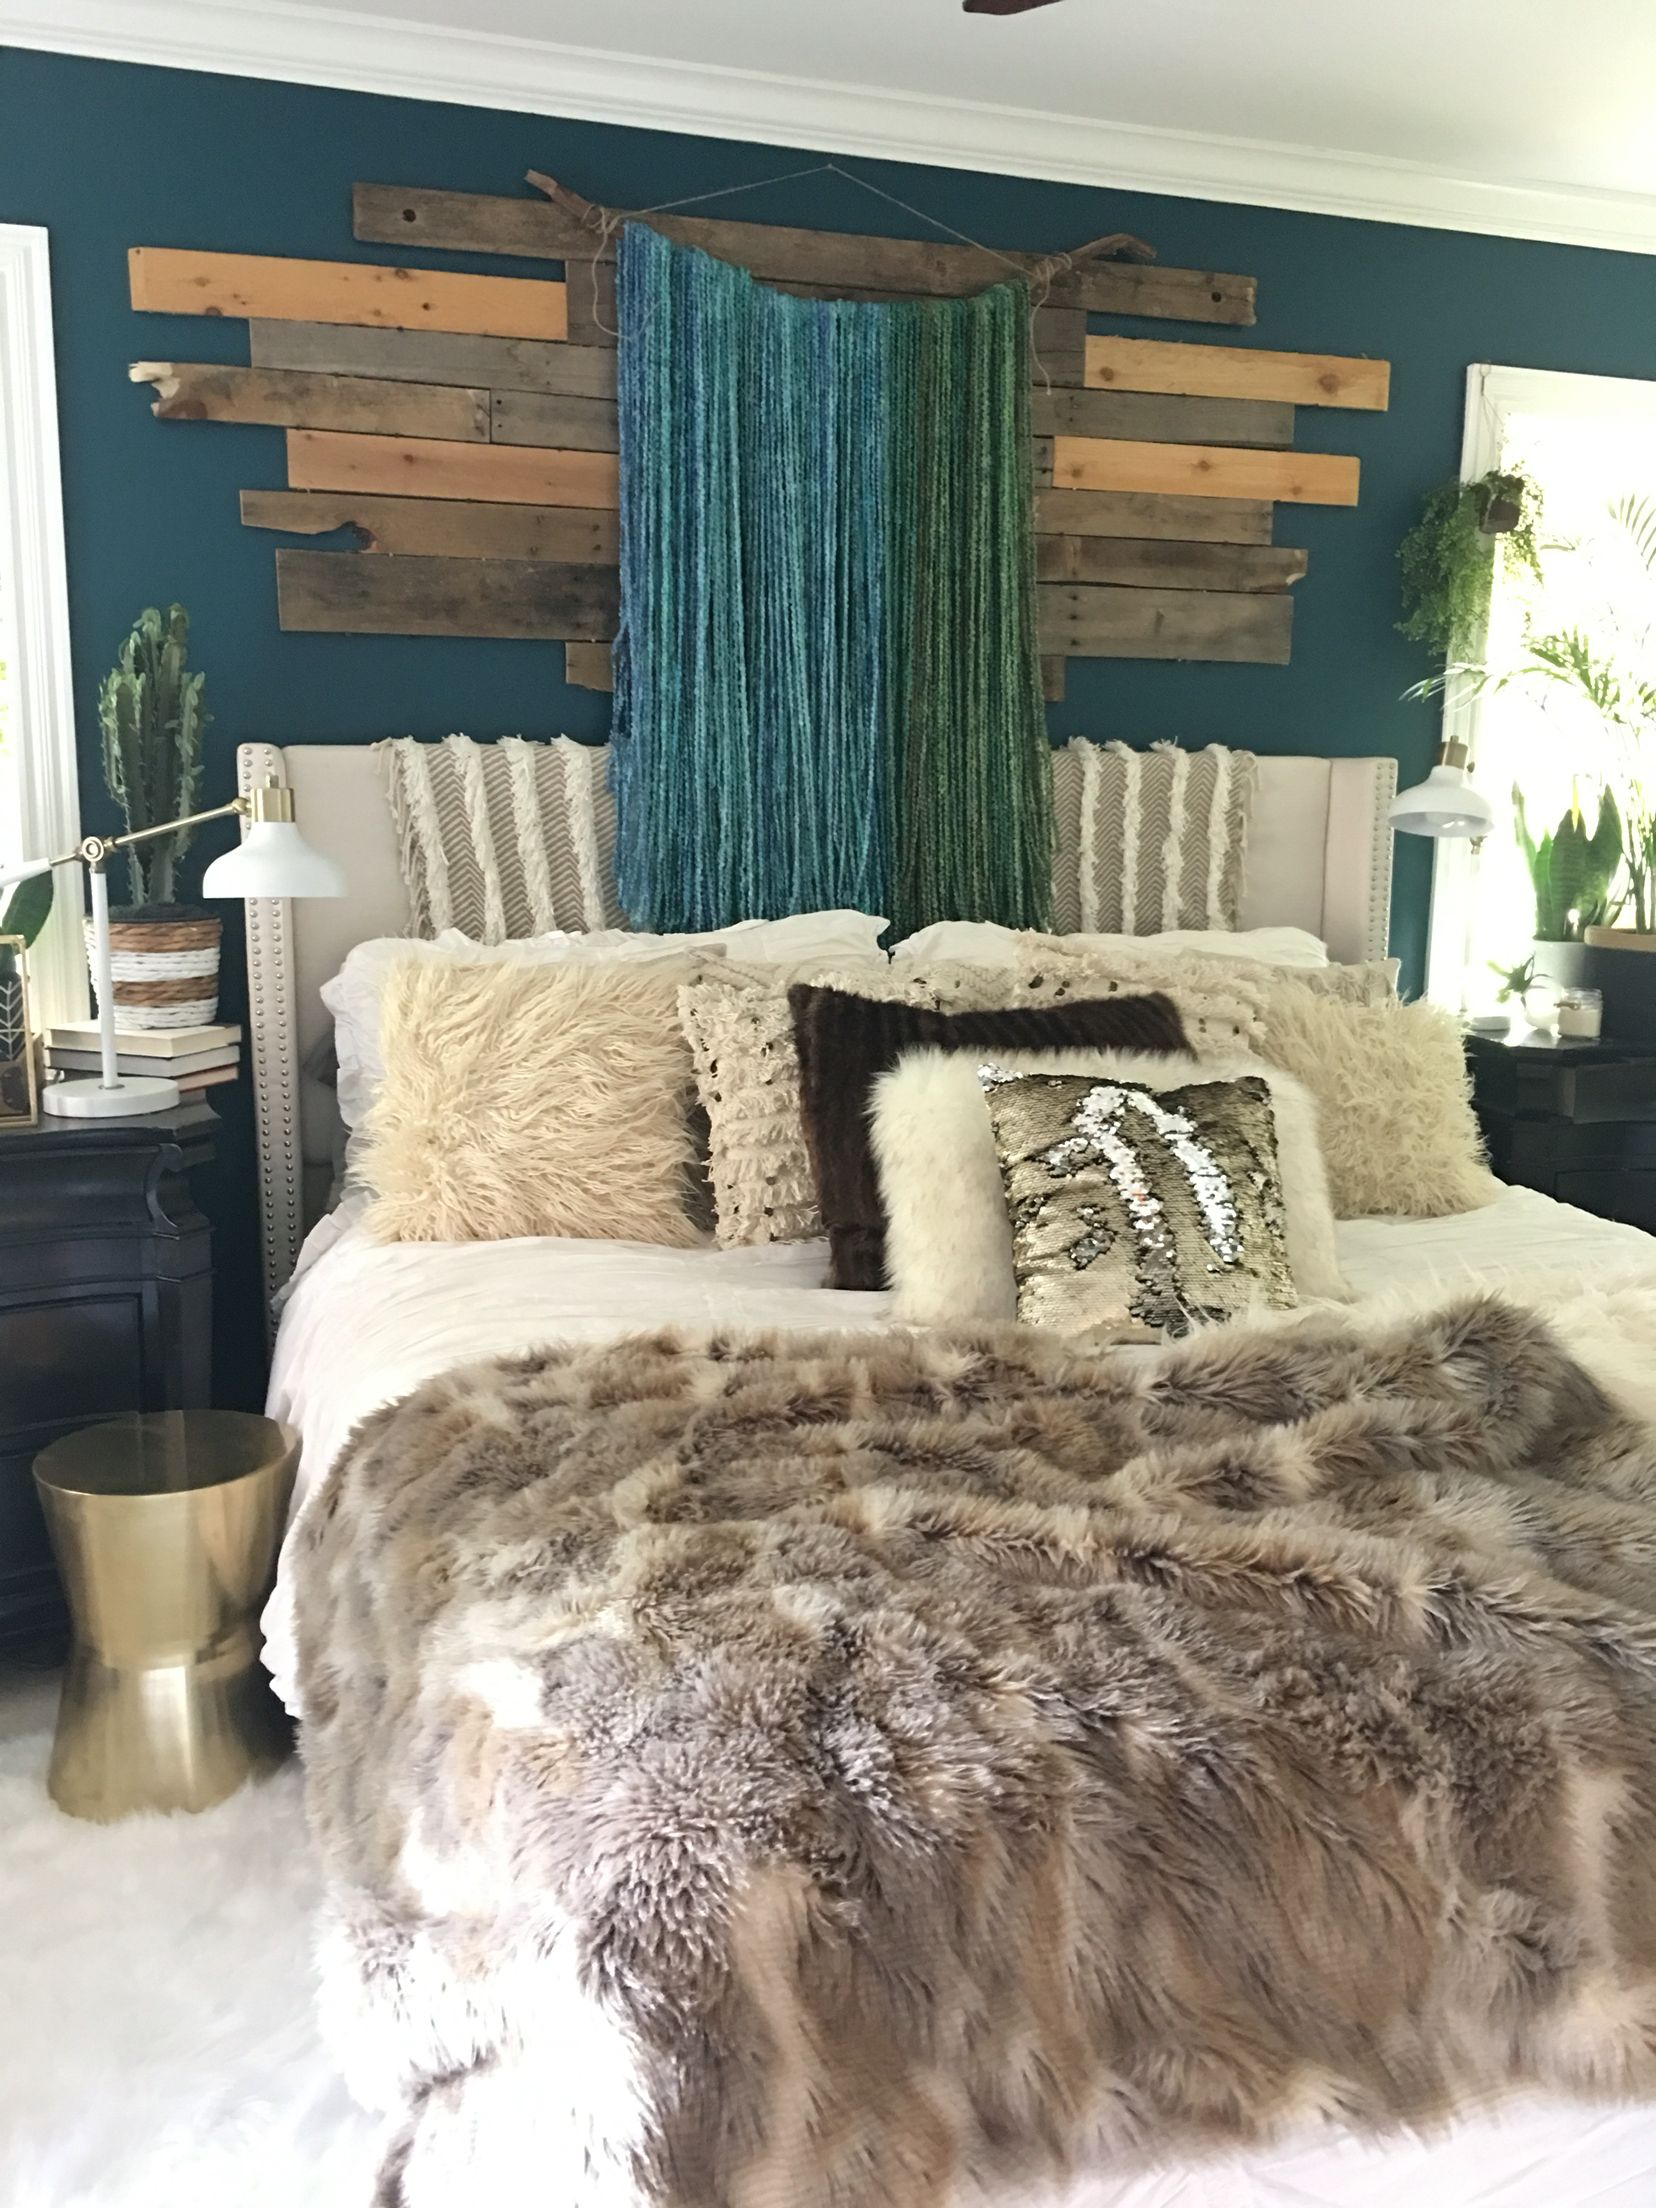 boho glam bedroomblissfully eclectic | ocean abyss | creative